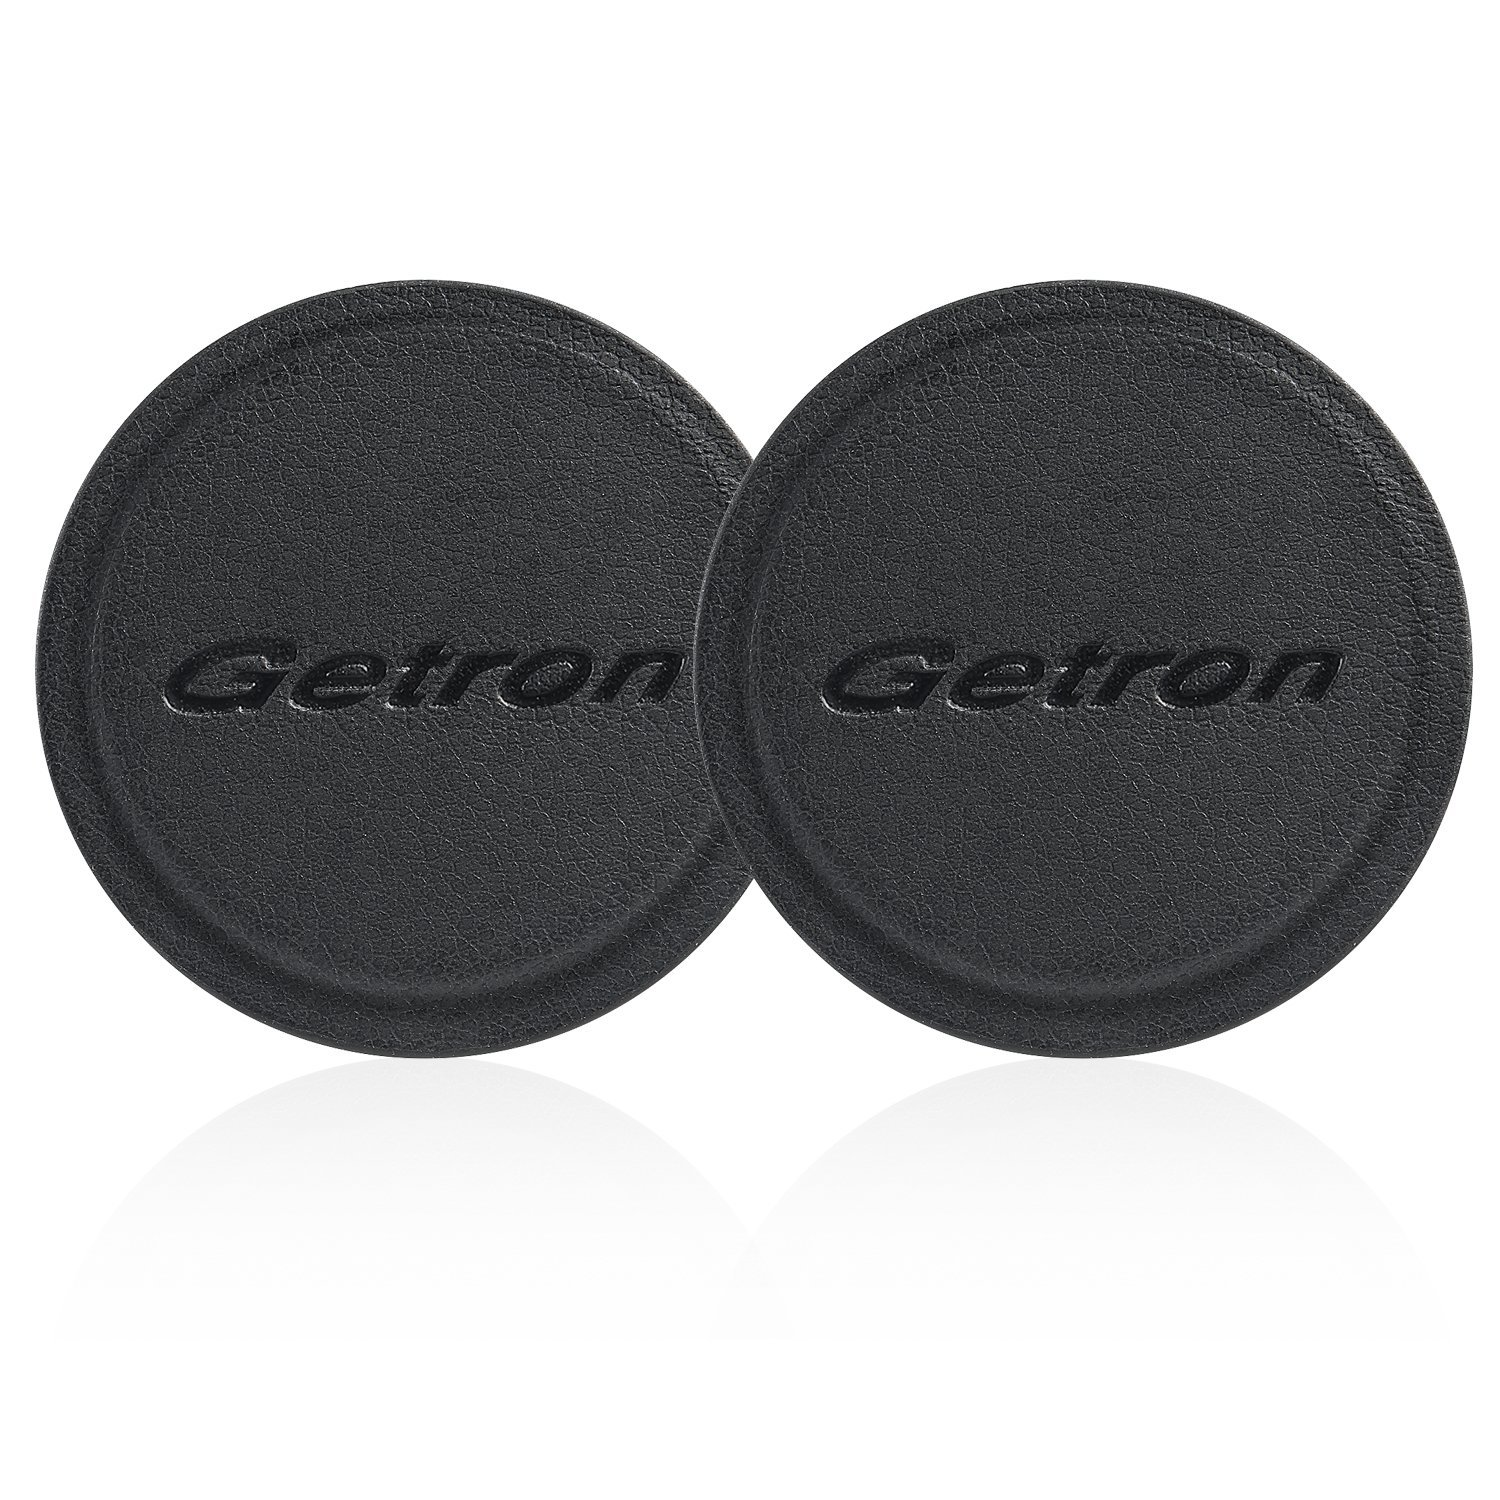 Mount Metal Plate, Getron 2 Pack Universal Replacement Mount Leather Metal Plate Kit with 3M Adhesive for Magnetic Car Mount Cell Phone Holder, 2 Round Shape, Smooth Edge – Black